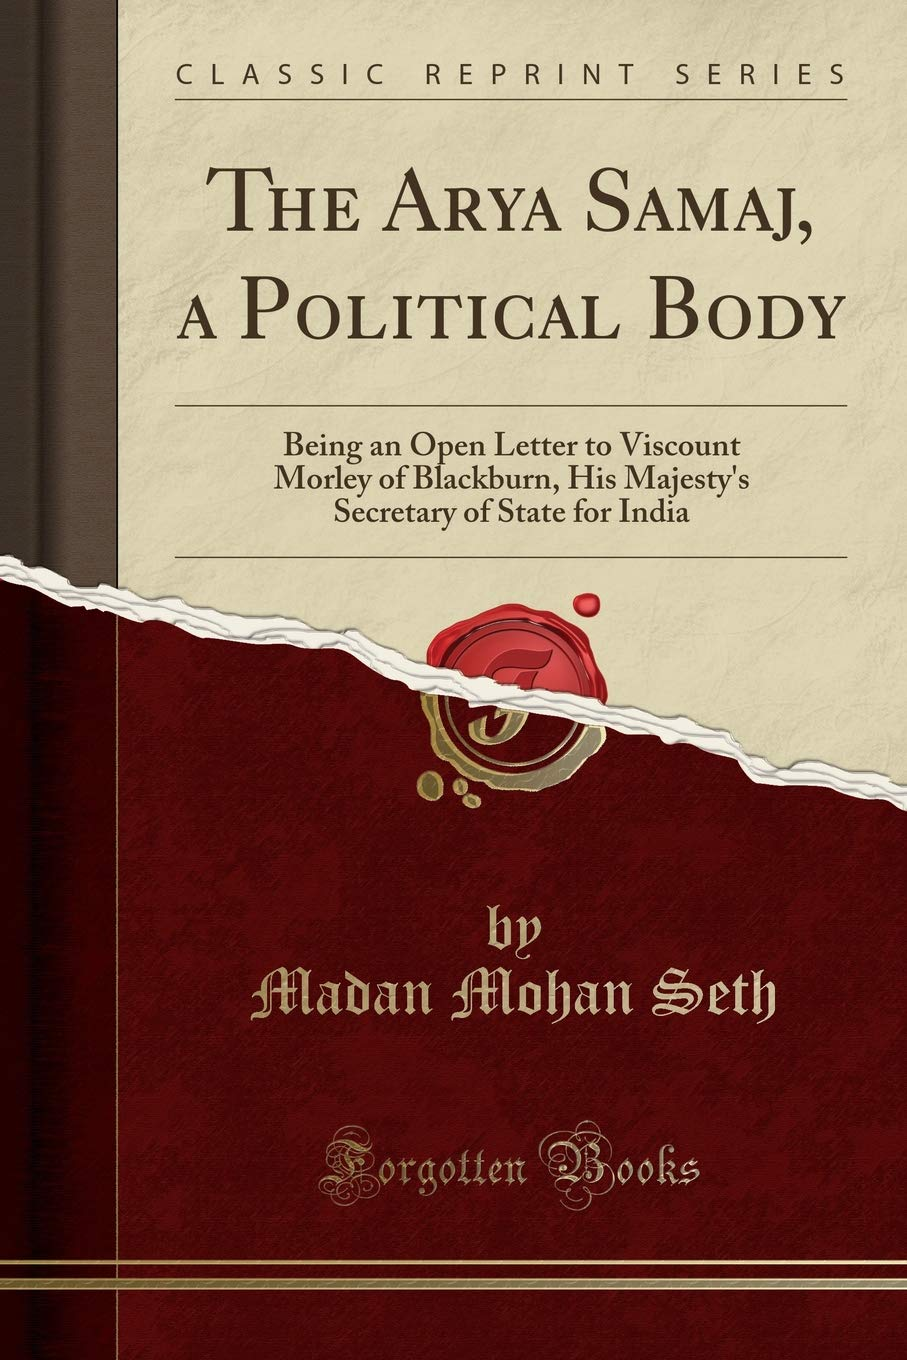 Download The Arya Samaj, a Political Body: Being an Open Letter to Viscount Morley of Blackburn, His Majesty's Secretary of State for India (Classic Reprint) pdf